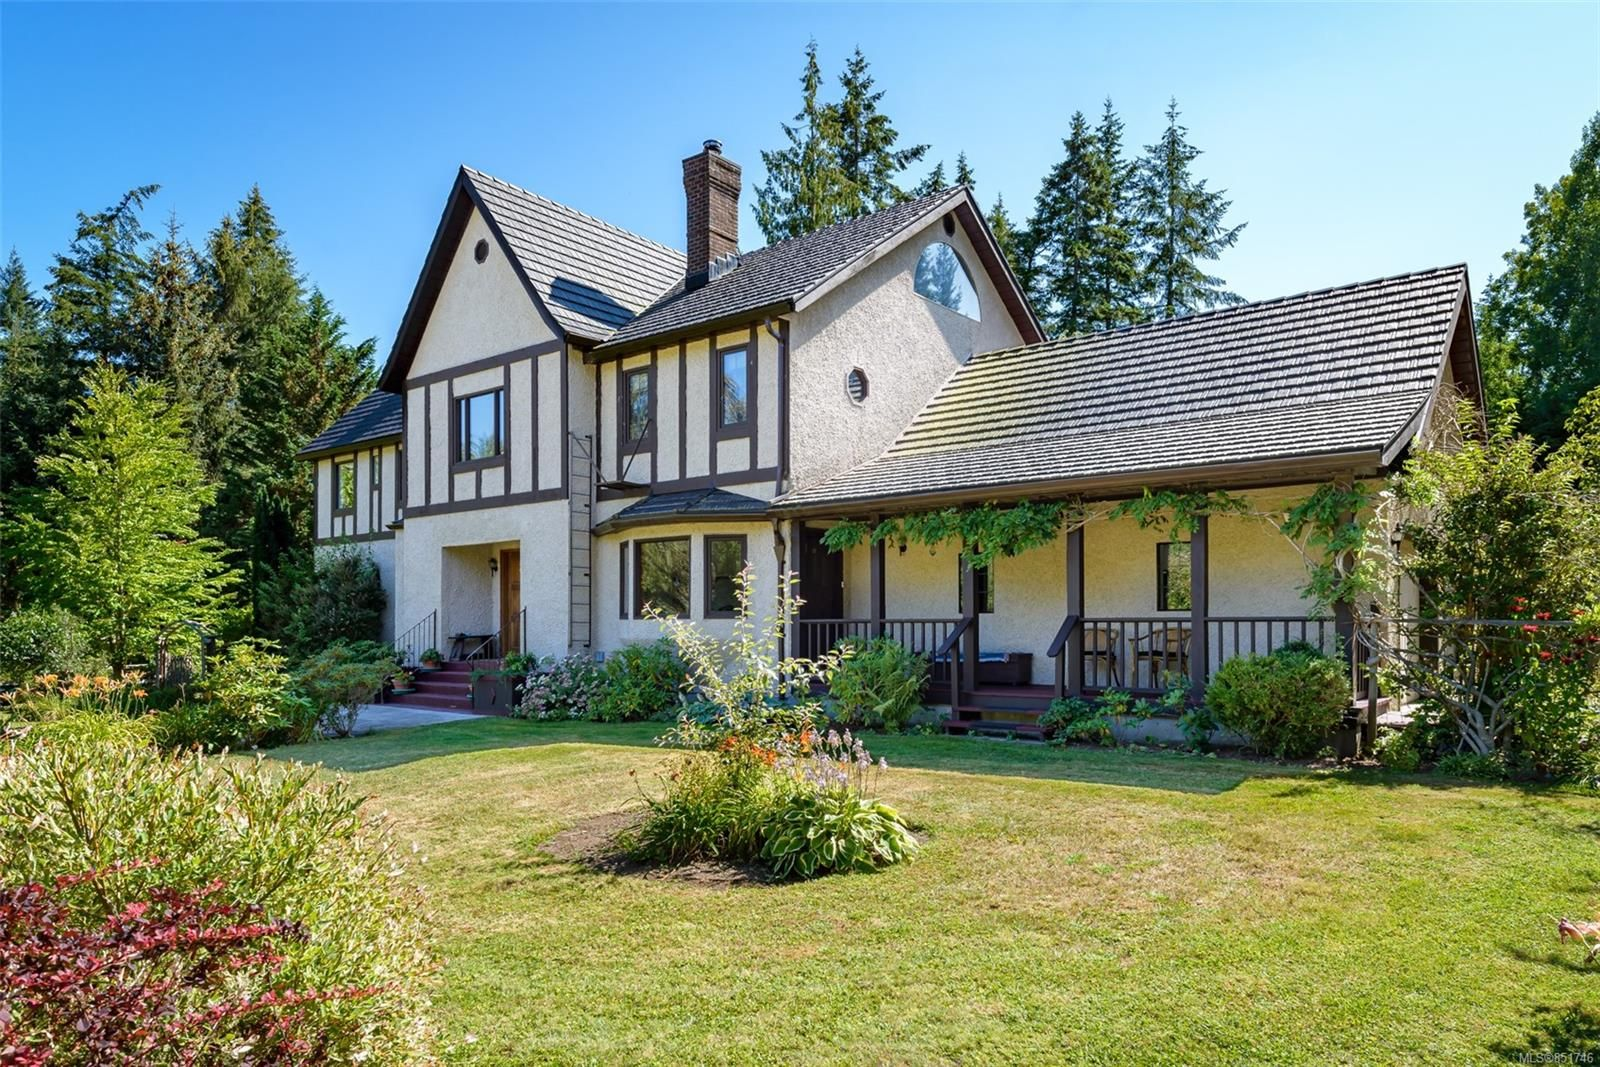 Main Photo: 6620 Rennie Rd in : CV Courtenay North House for sale (Comox Valley)  : MLS®# 851746